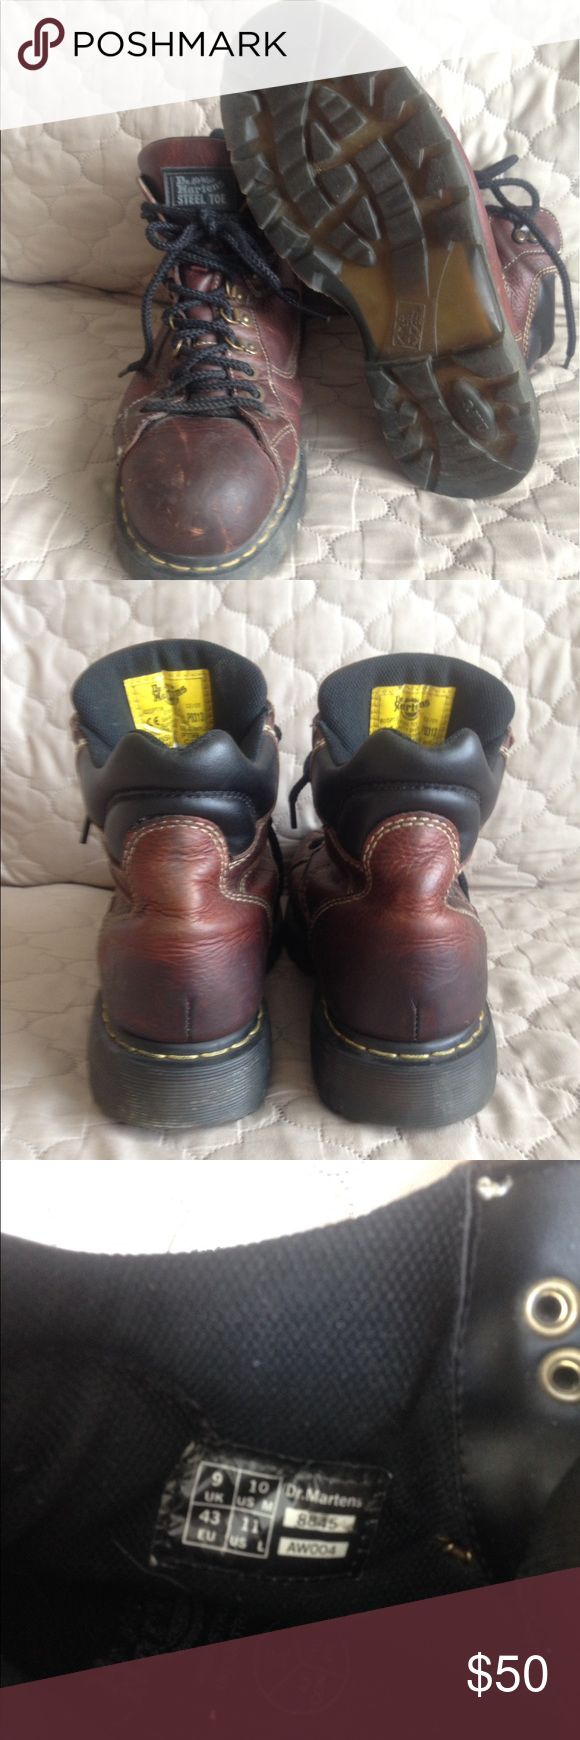 Dr Doc Martens AirWair Steel Toe Leather Brown distressed leather, steel toe.  Worn but still in great condition. Size 10M/11L. Dr. Martens Shoes Boots